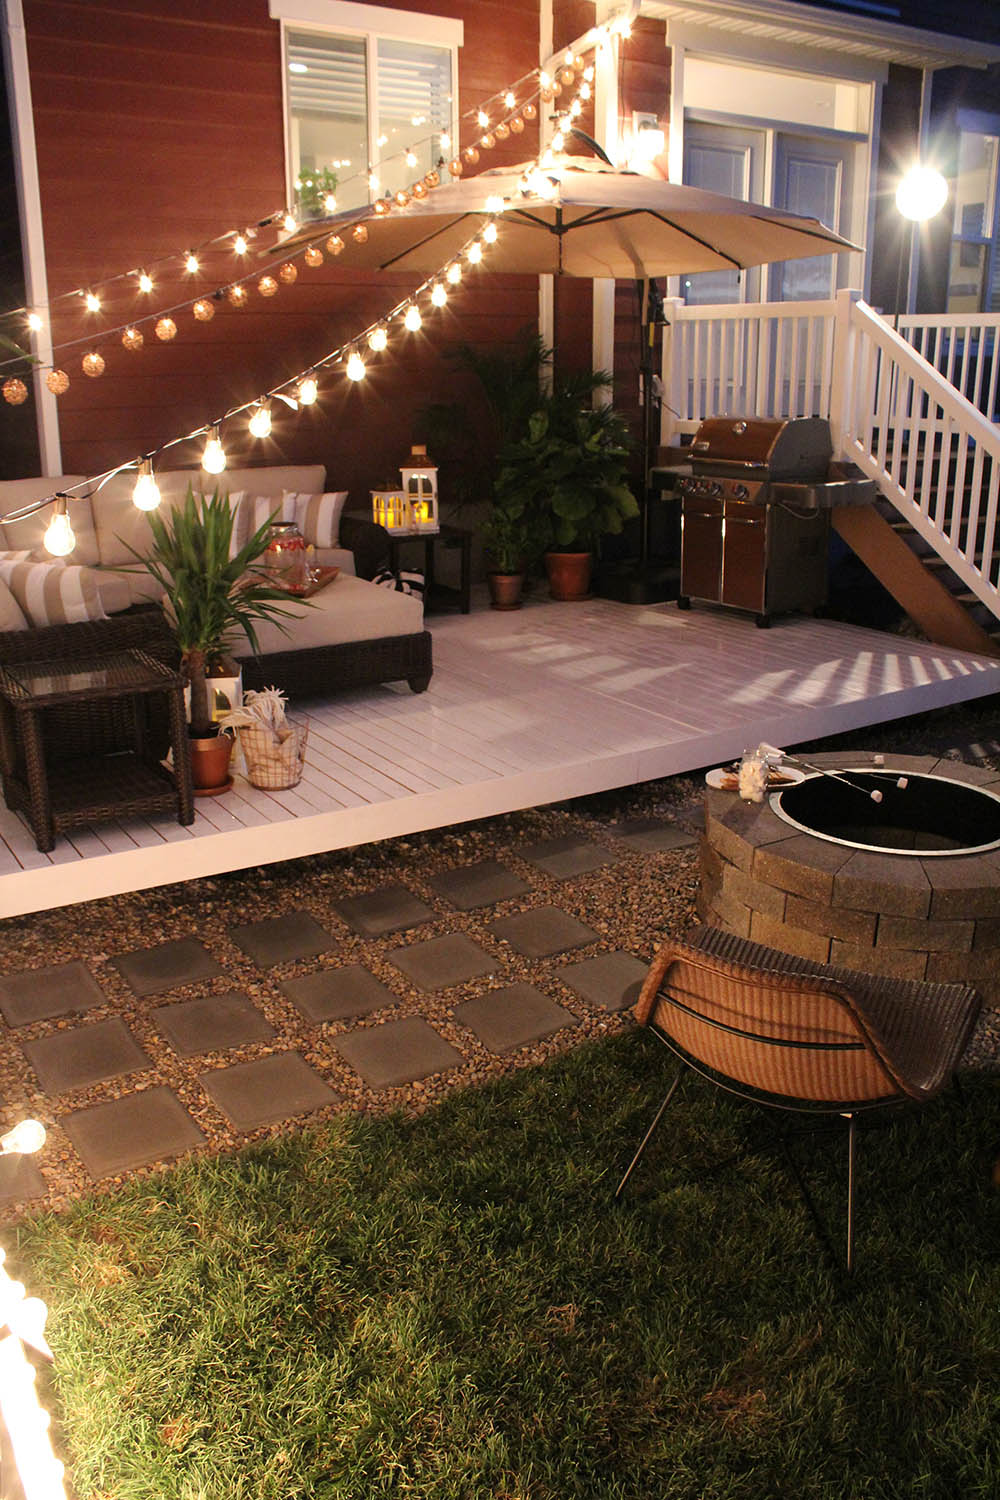 A fire pit and chair sit in front of a white low-level deck with a sectional.